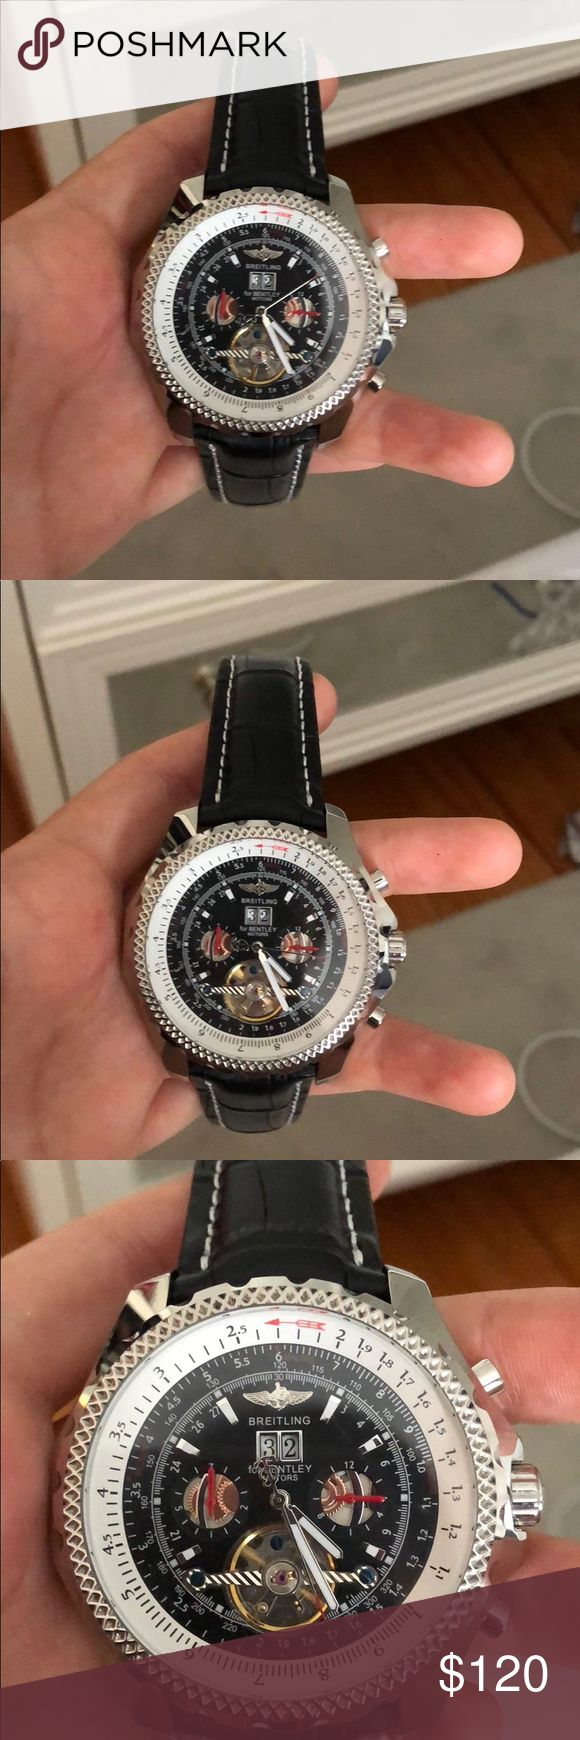 Imitation breitling Bentley watch Imitation breitling Bentley watch 48.8 mm steel case black baton dial. Perfect condition and fully functioning. Swiss replica NOT Japanese Accessories Watches